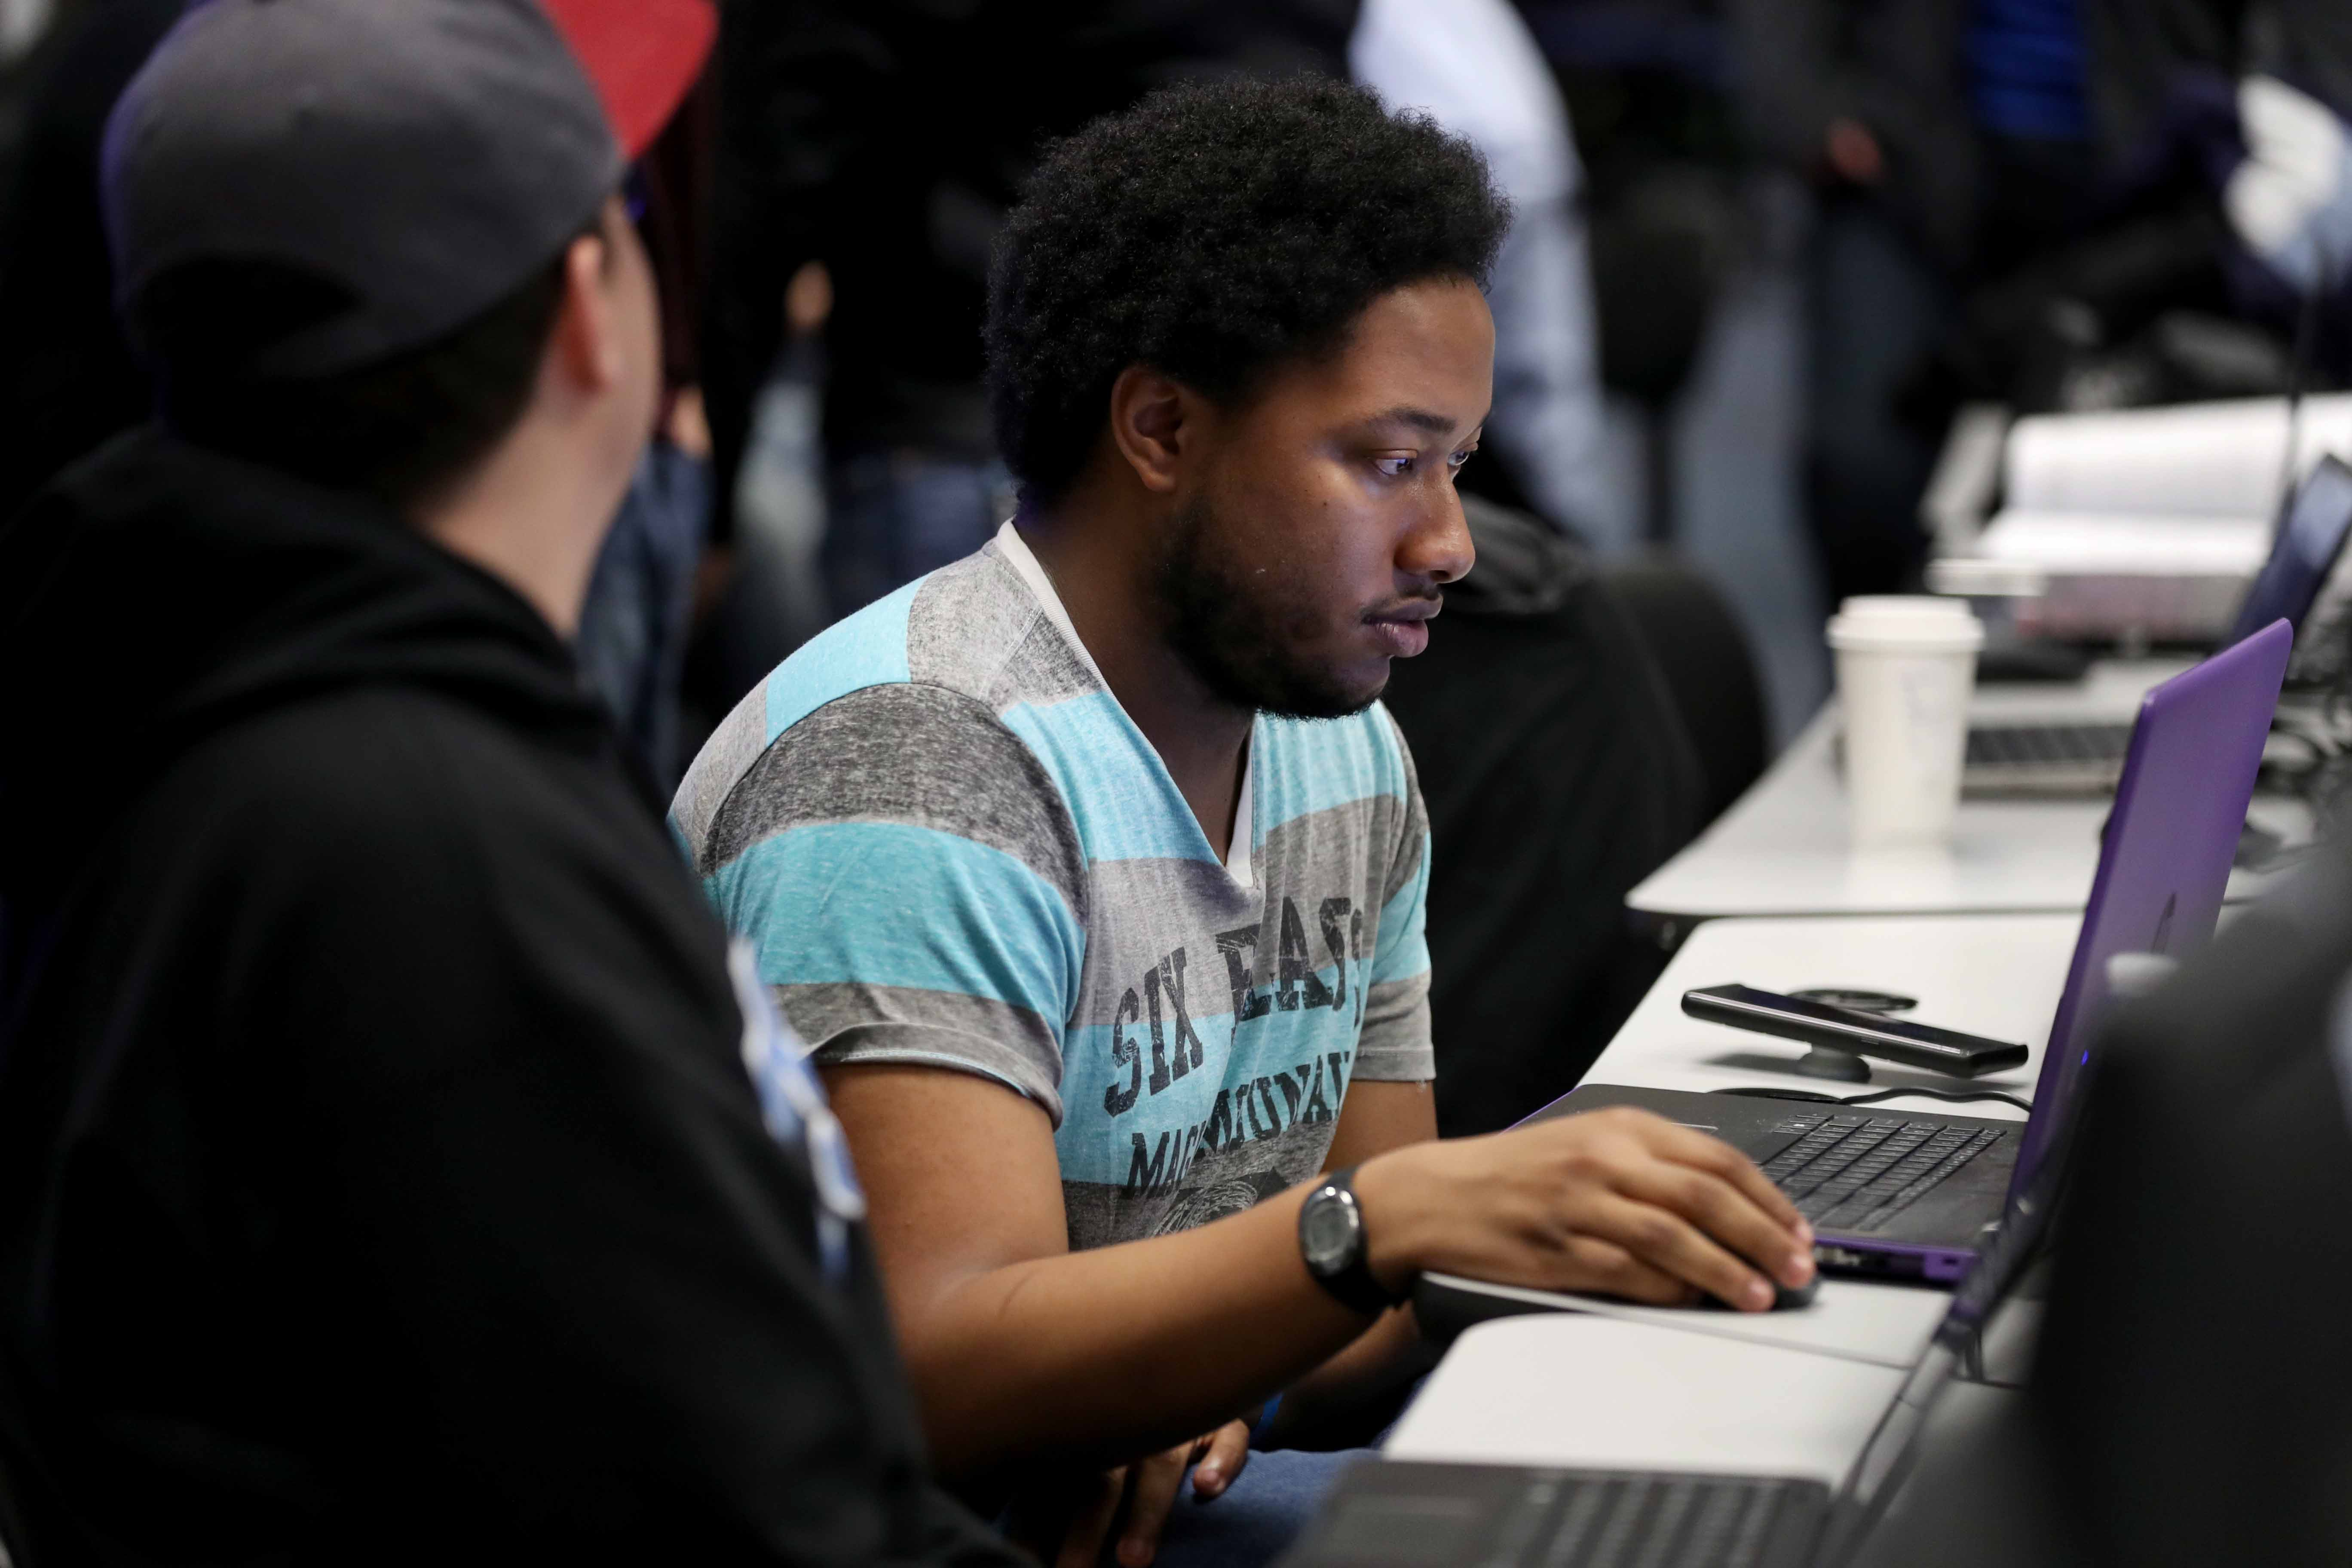 The event was a competition between teams consisting of 3-5 people who were given 15 hours to hack enough code to demonstrate Sunday morning. Each team was judged by a panel of experts.